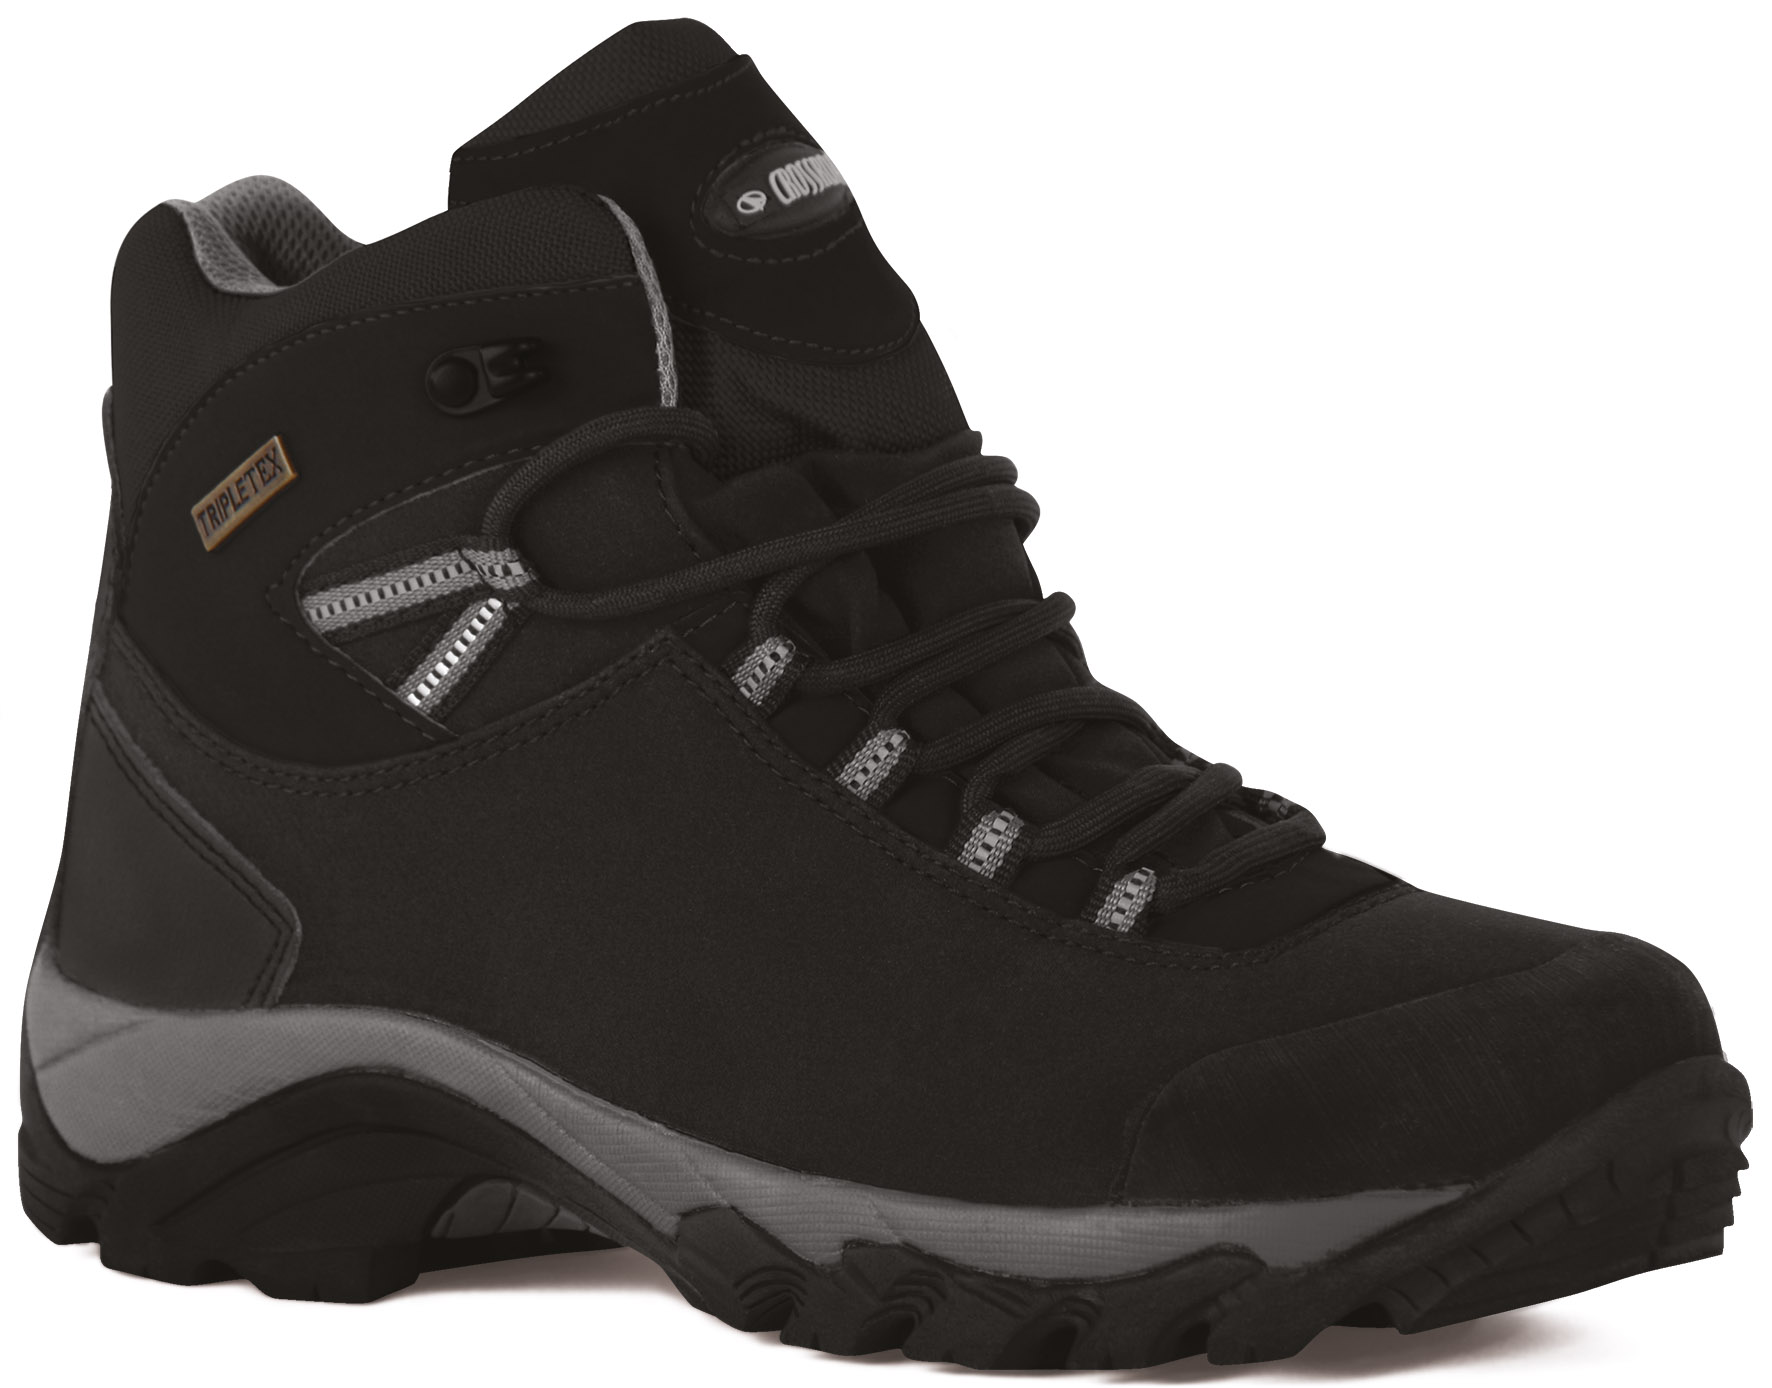 Women's Trekking Shoes